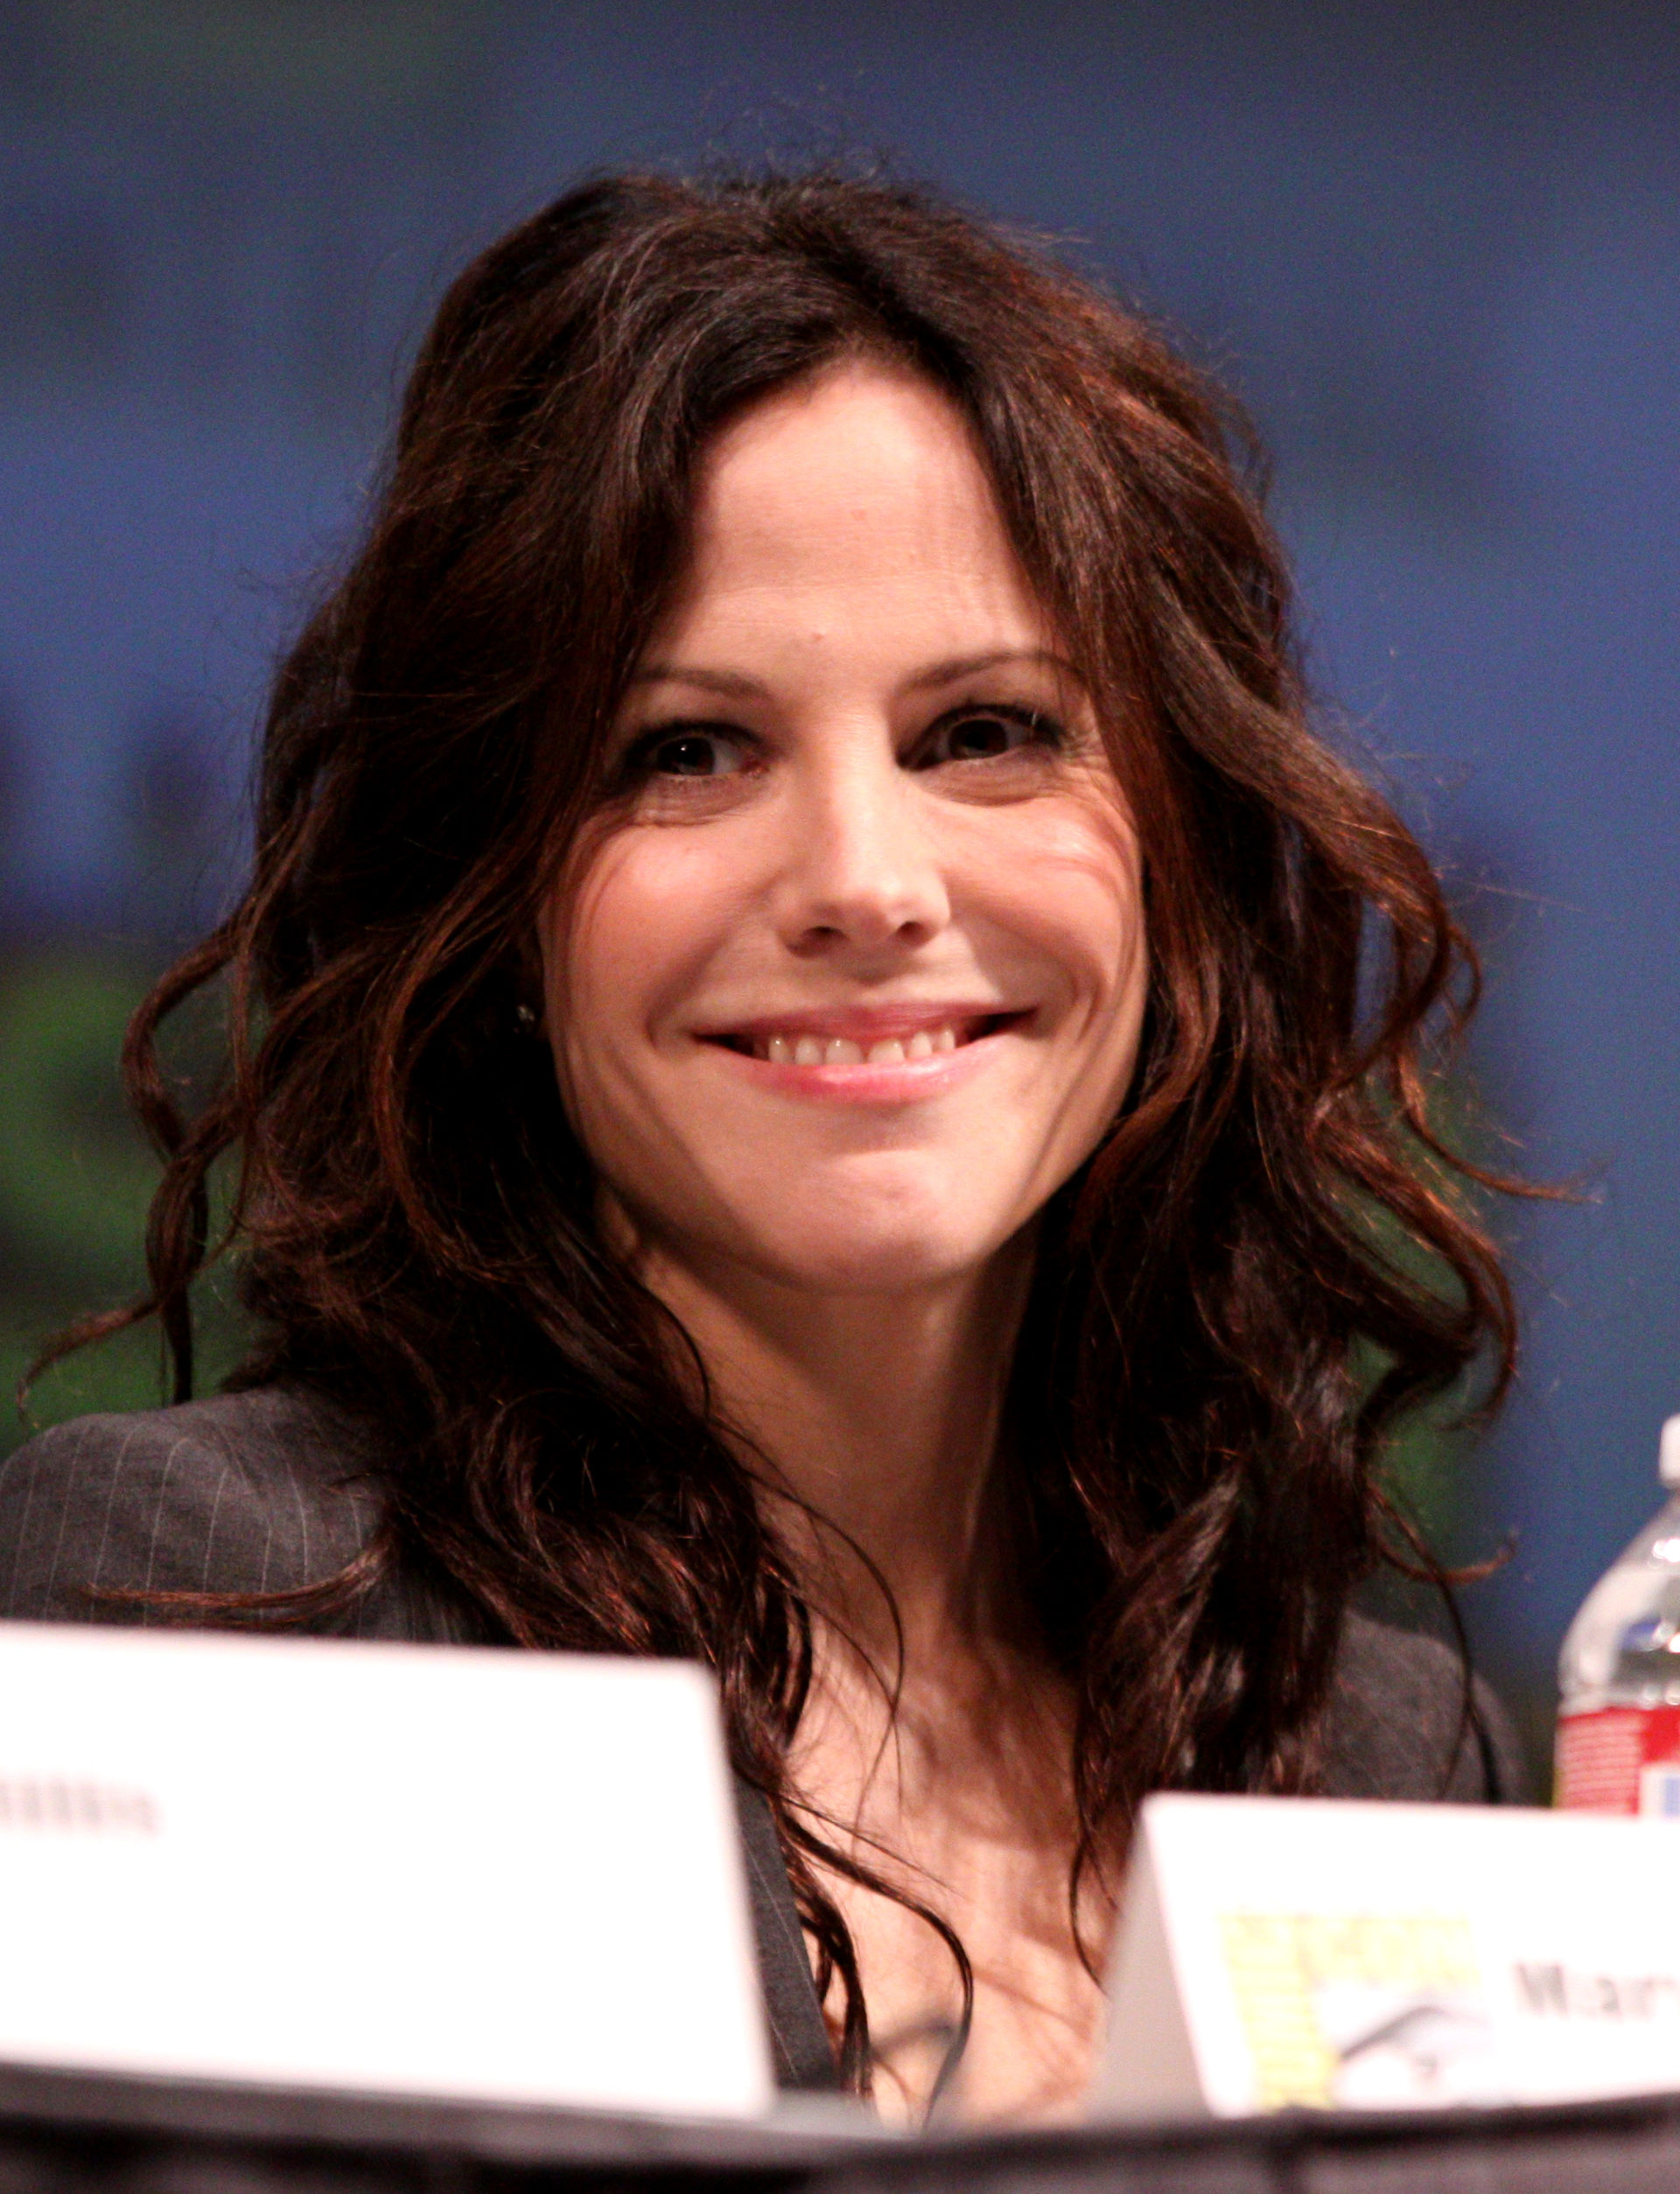 Mary louise parker wikipedia for Gardner austin